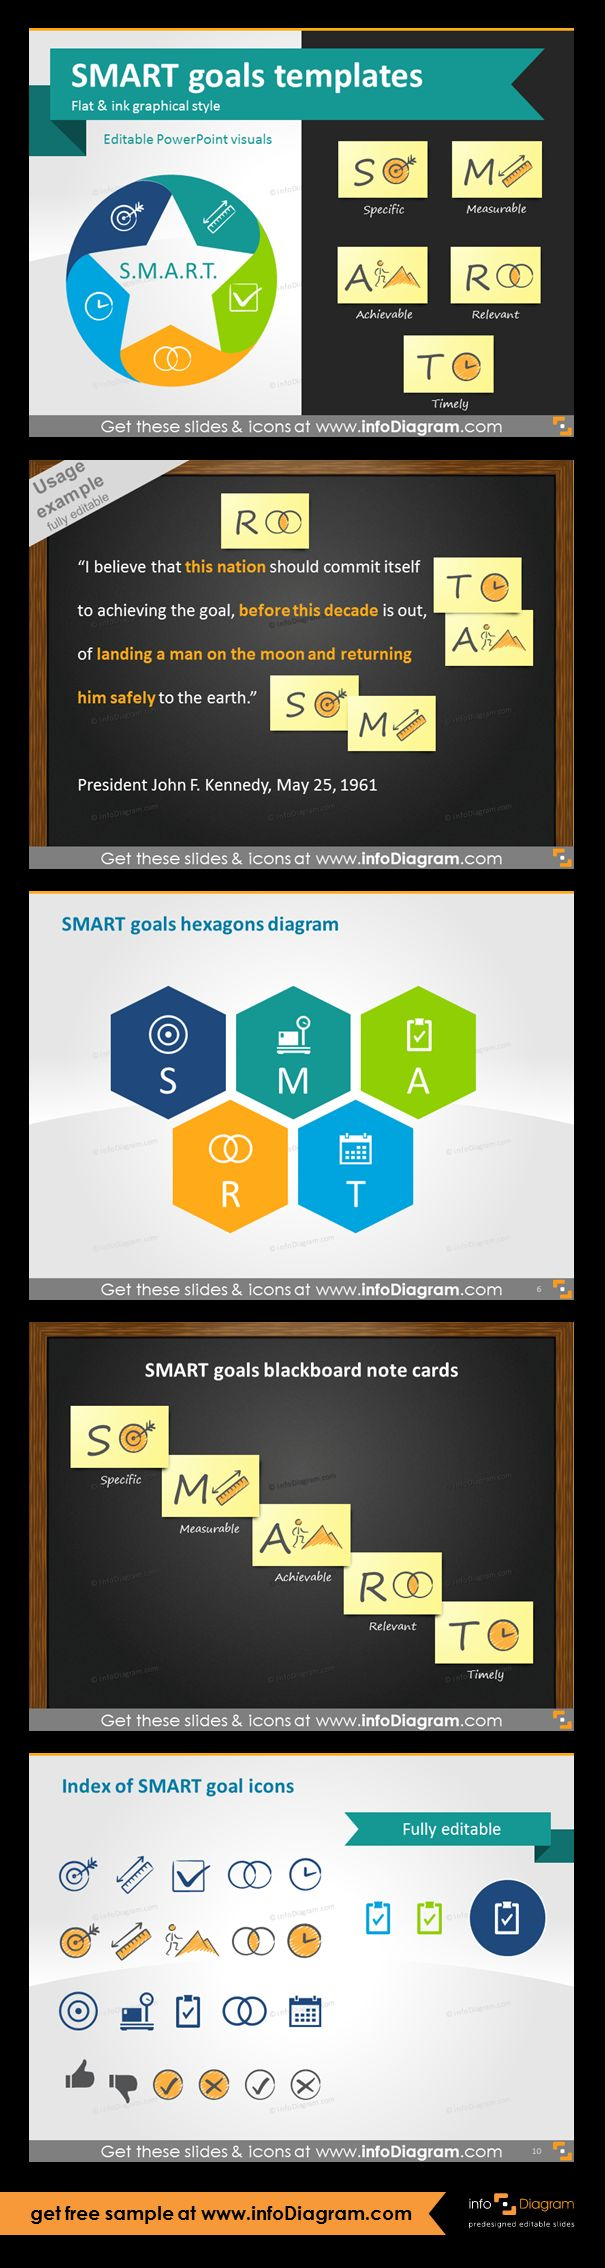 SMART goals setting graphics for business presentations. SMART goals are used in project management, in HR for increasing employee performance, business planning or personal development. Using SMART is a powerful motivation tool. SMART goals blackboard note cards and example of analysis JFK quote on mission to Moon, SMART goals hexagons diagram, index of 13 fully editable icons for all five SMART characteristics in two graphical styles.